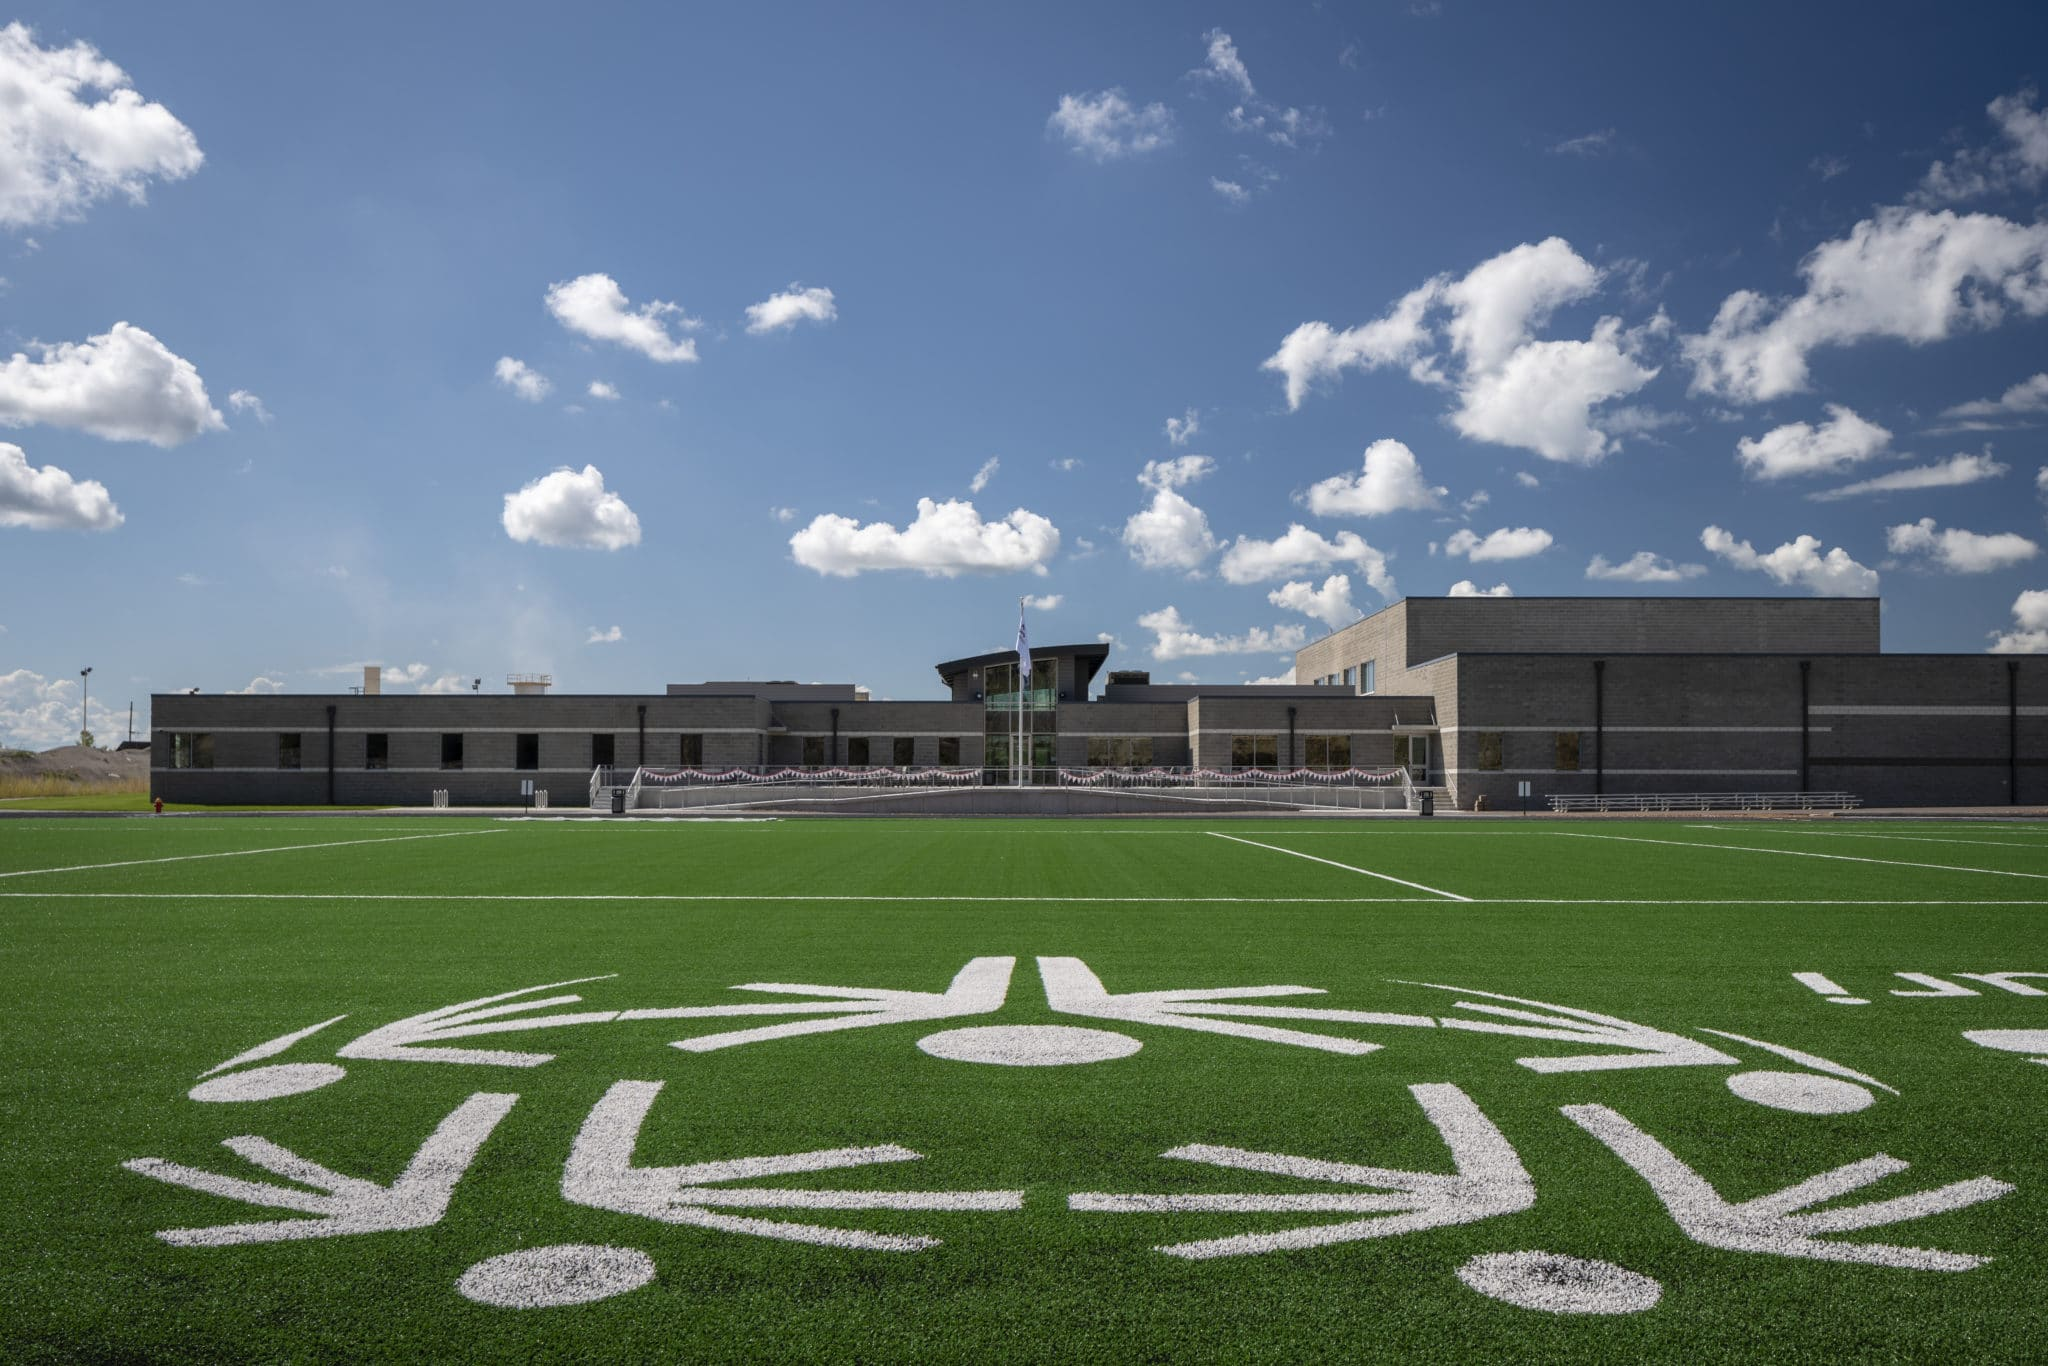 An exterior photo of the turf field at the Training for Life Campus